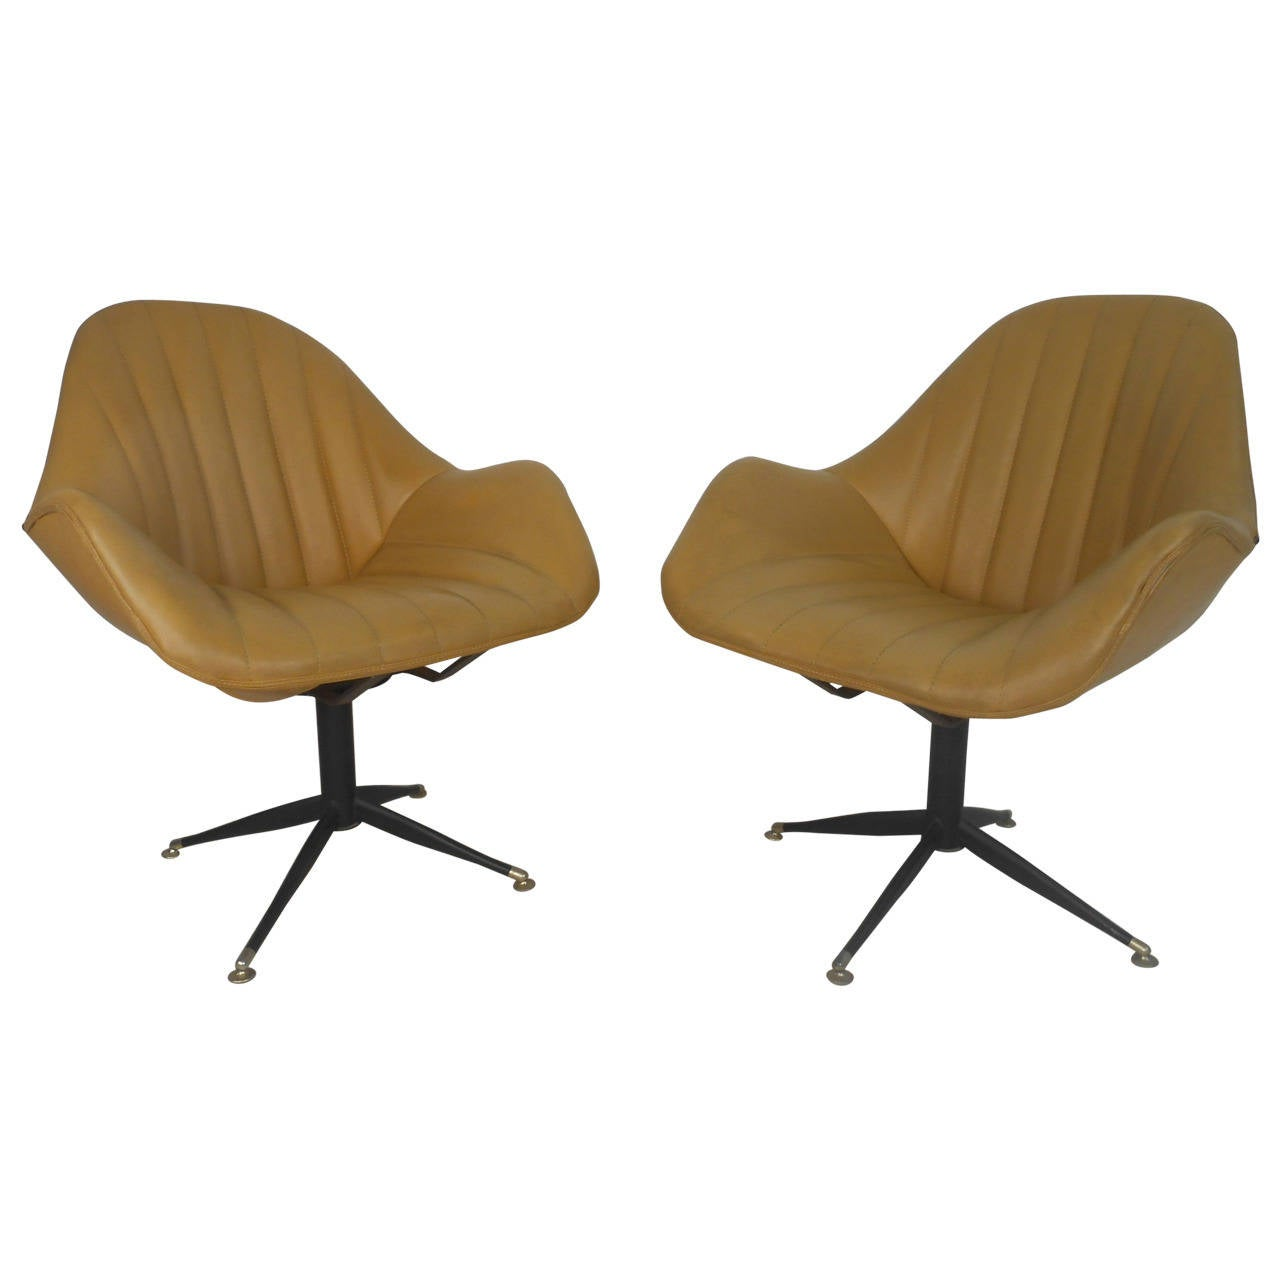 Vintage Modern Swivel Lounge Chairs France & Sons